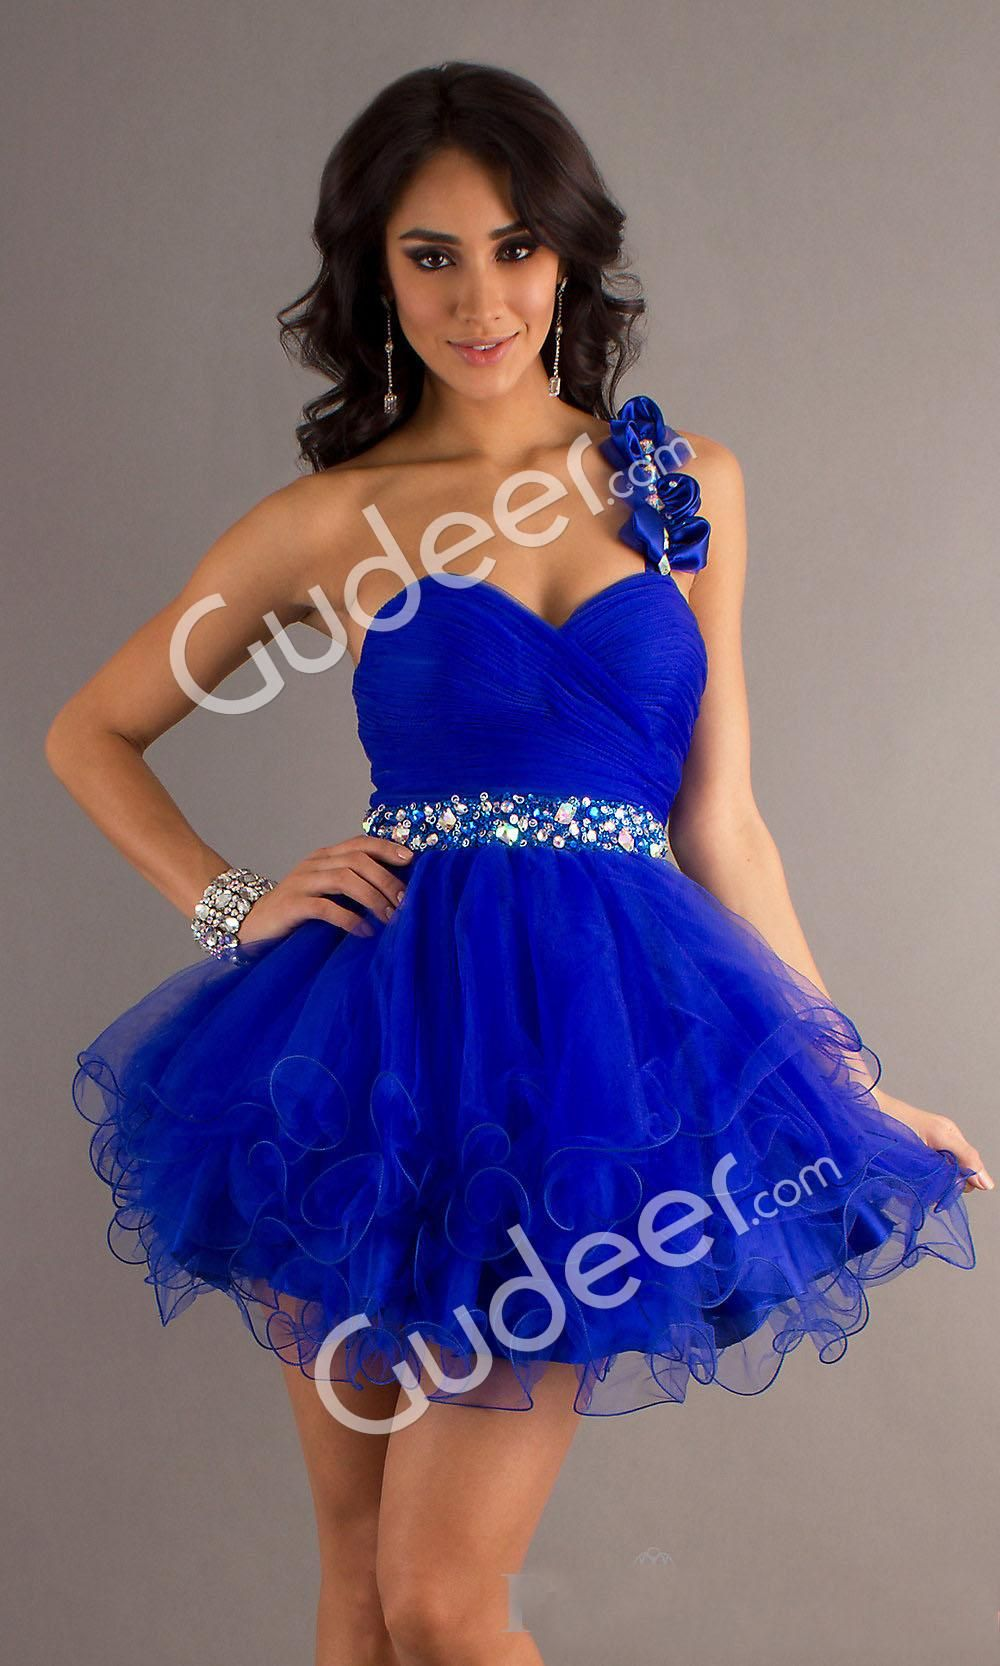 78 Best images about Short Prom Dresses on Pinterest  Royal blue ...